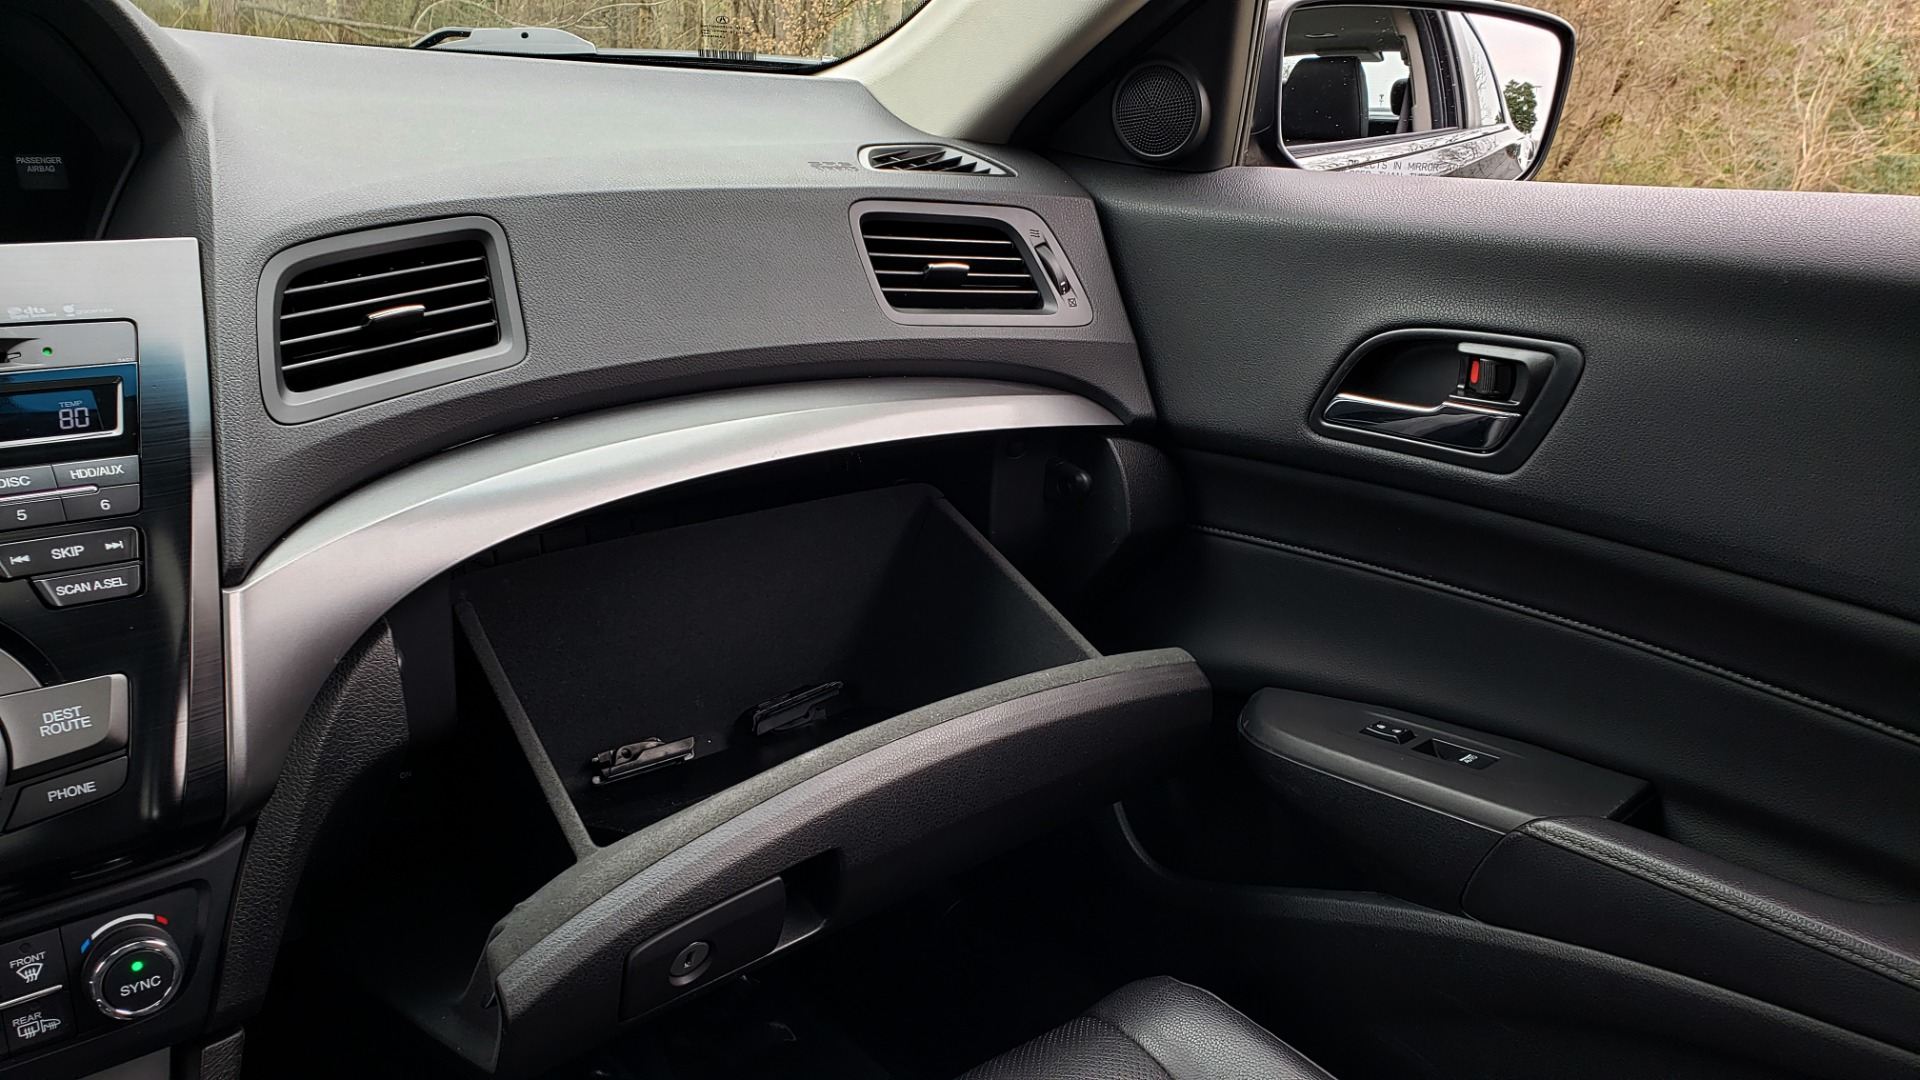 Used 2013 Acura ILX TECH PKG / SUNROOF / NAV / DUAL-ZONE A/C / REARVIEW for sale Sold at Formula Imports in Charlotte NC 28227 46